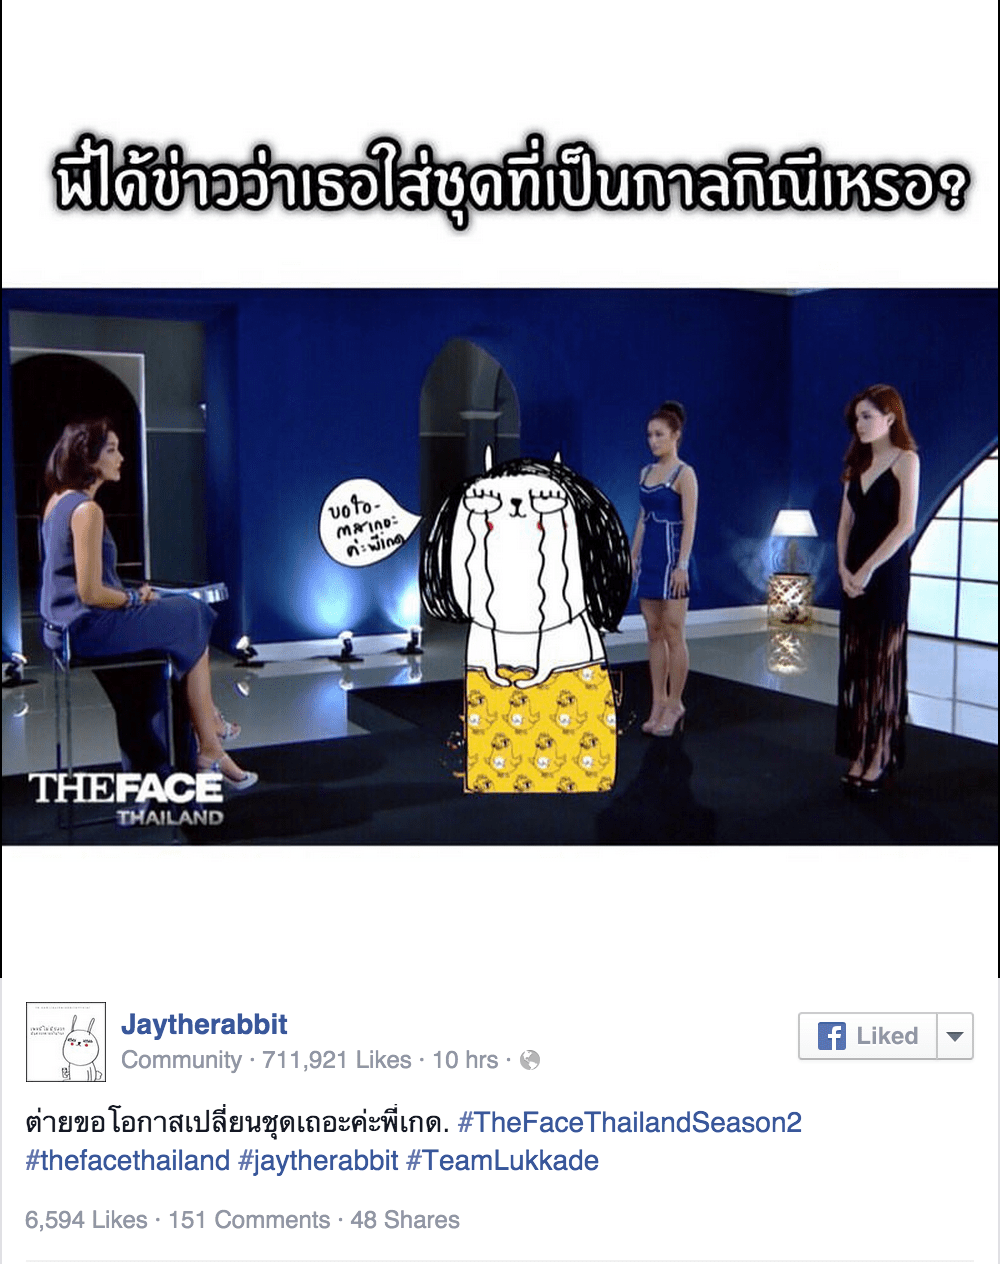 thefacethailand